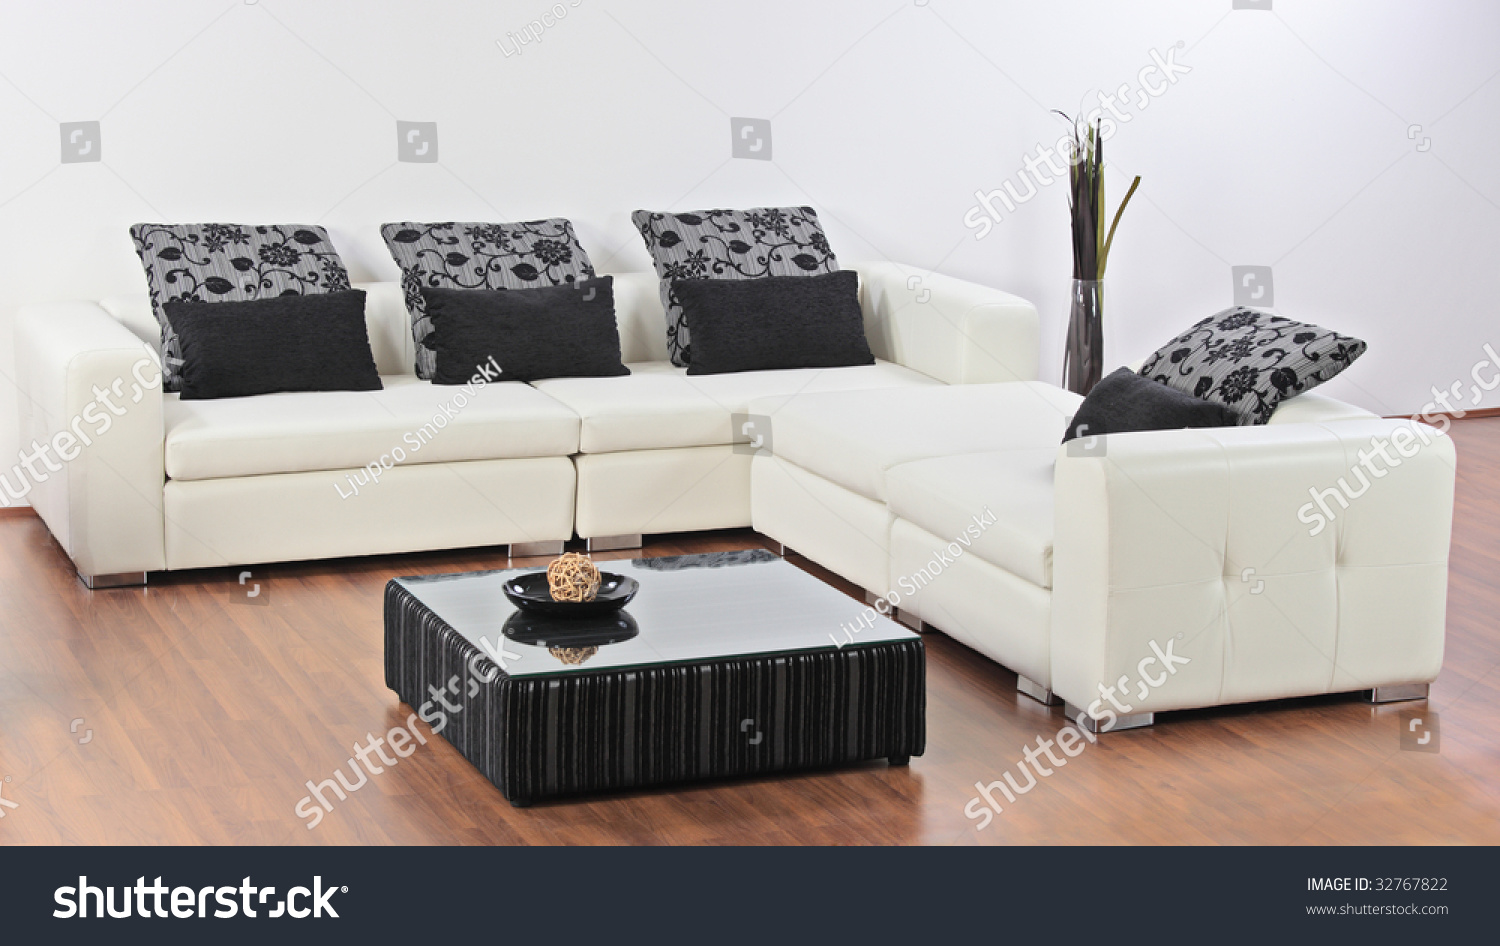 a modern minimalist living room with furniture stock photo 32767822 shutterstock. Black Bedroom Furniture Sets. Home Design Ideas